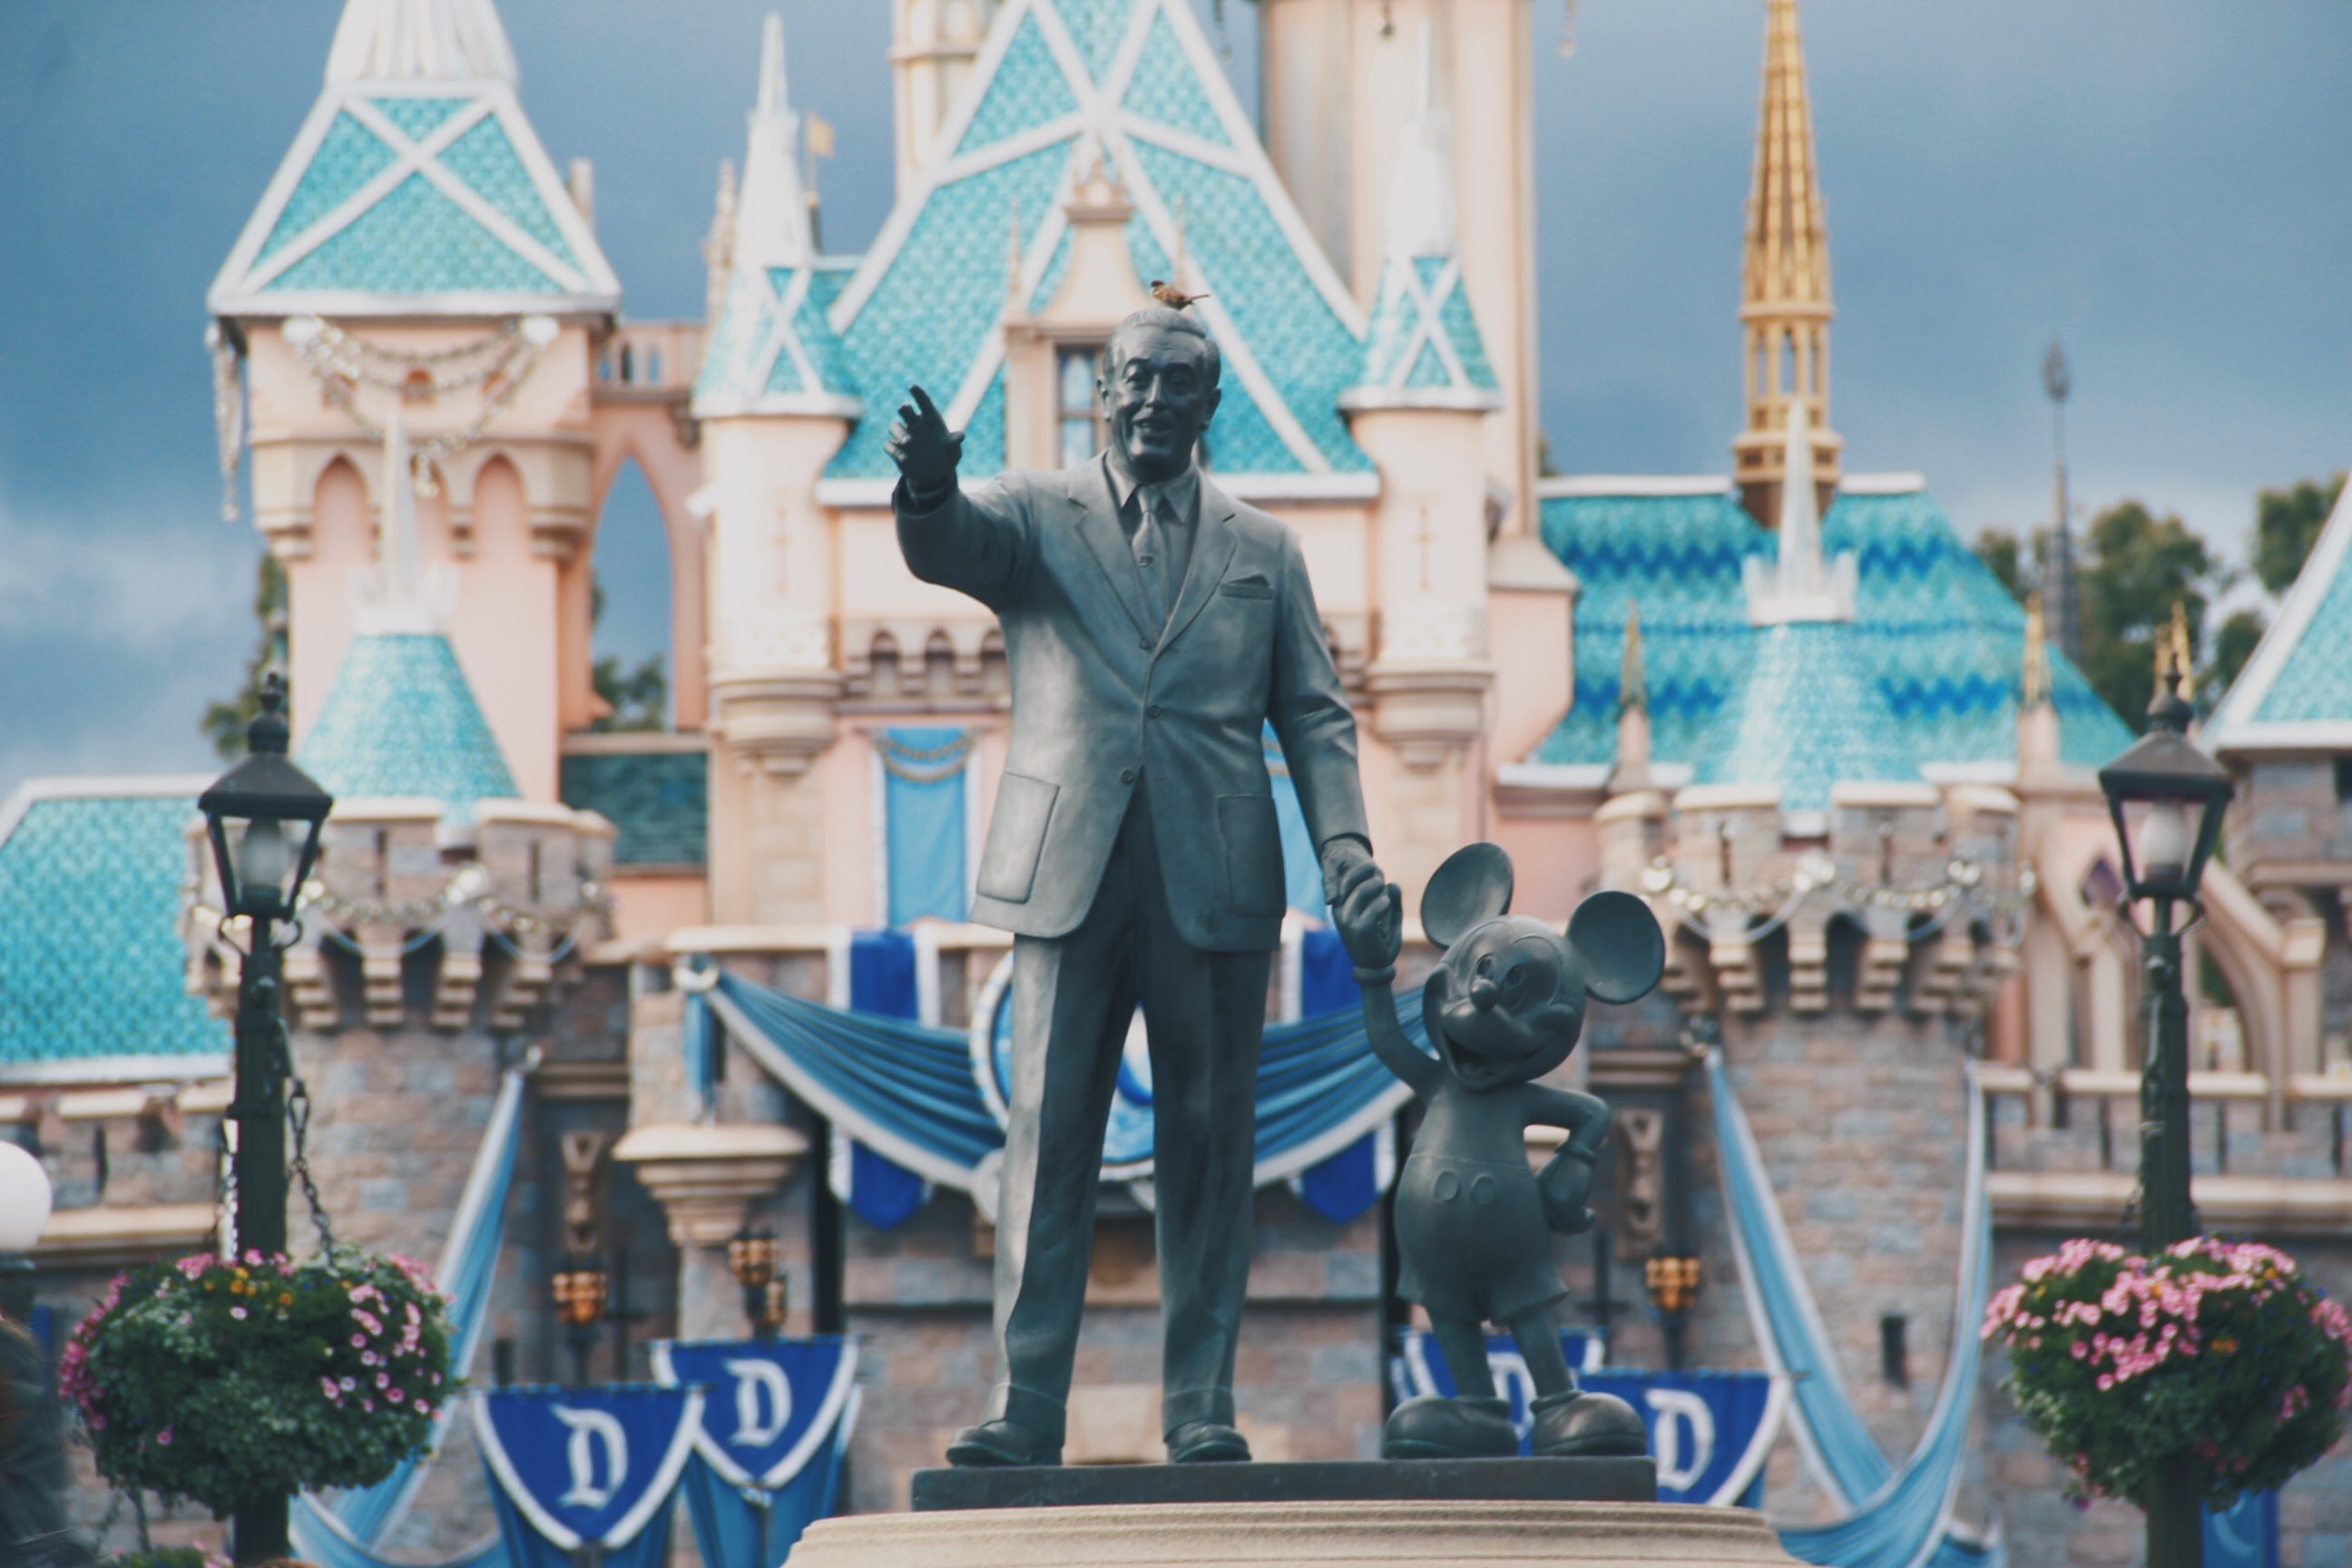 The statue of Walt Disney and Mickey Mouse in Disneyland